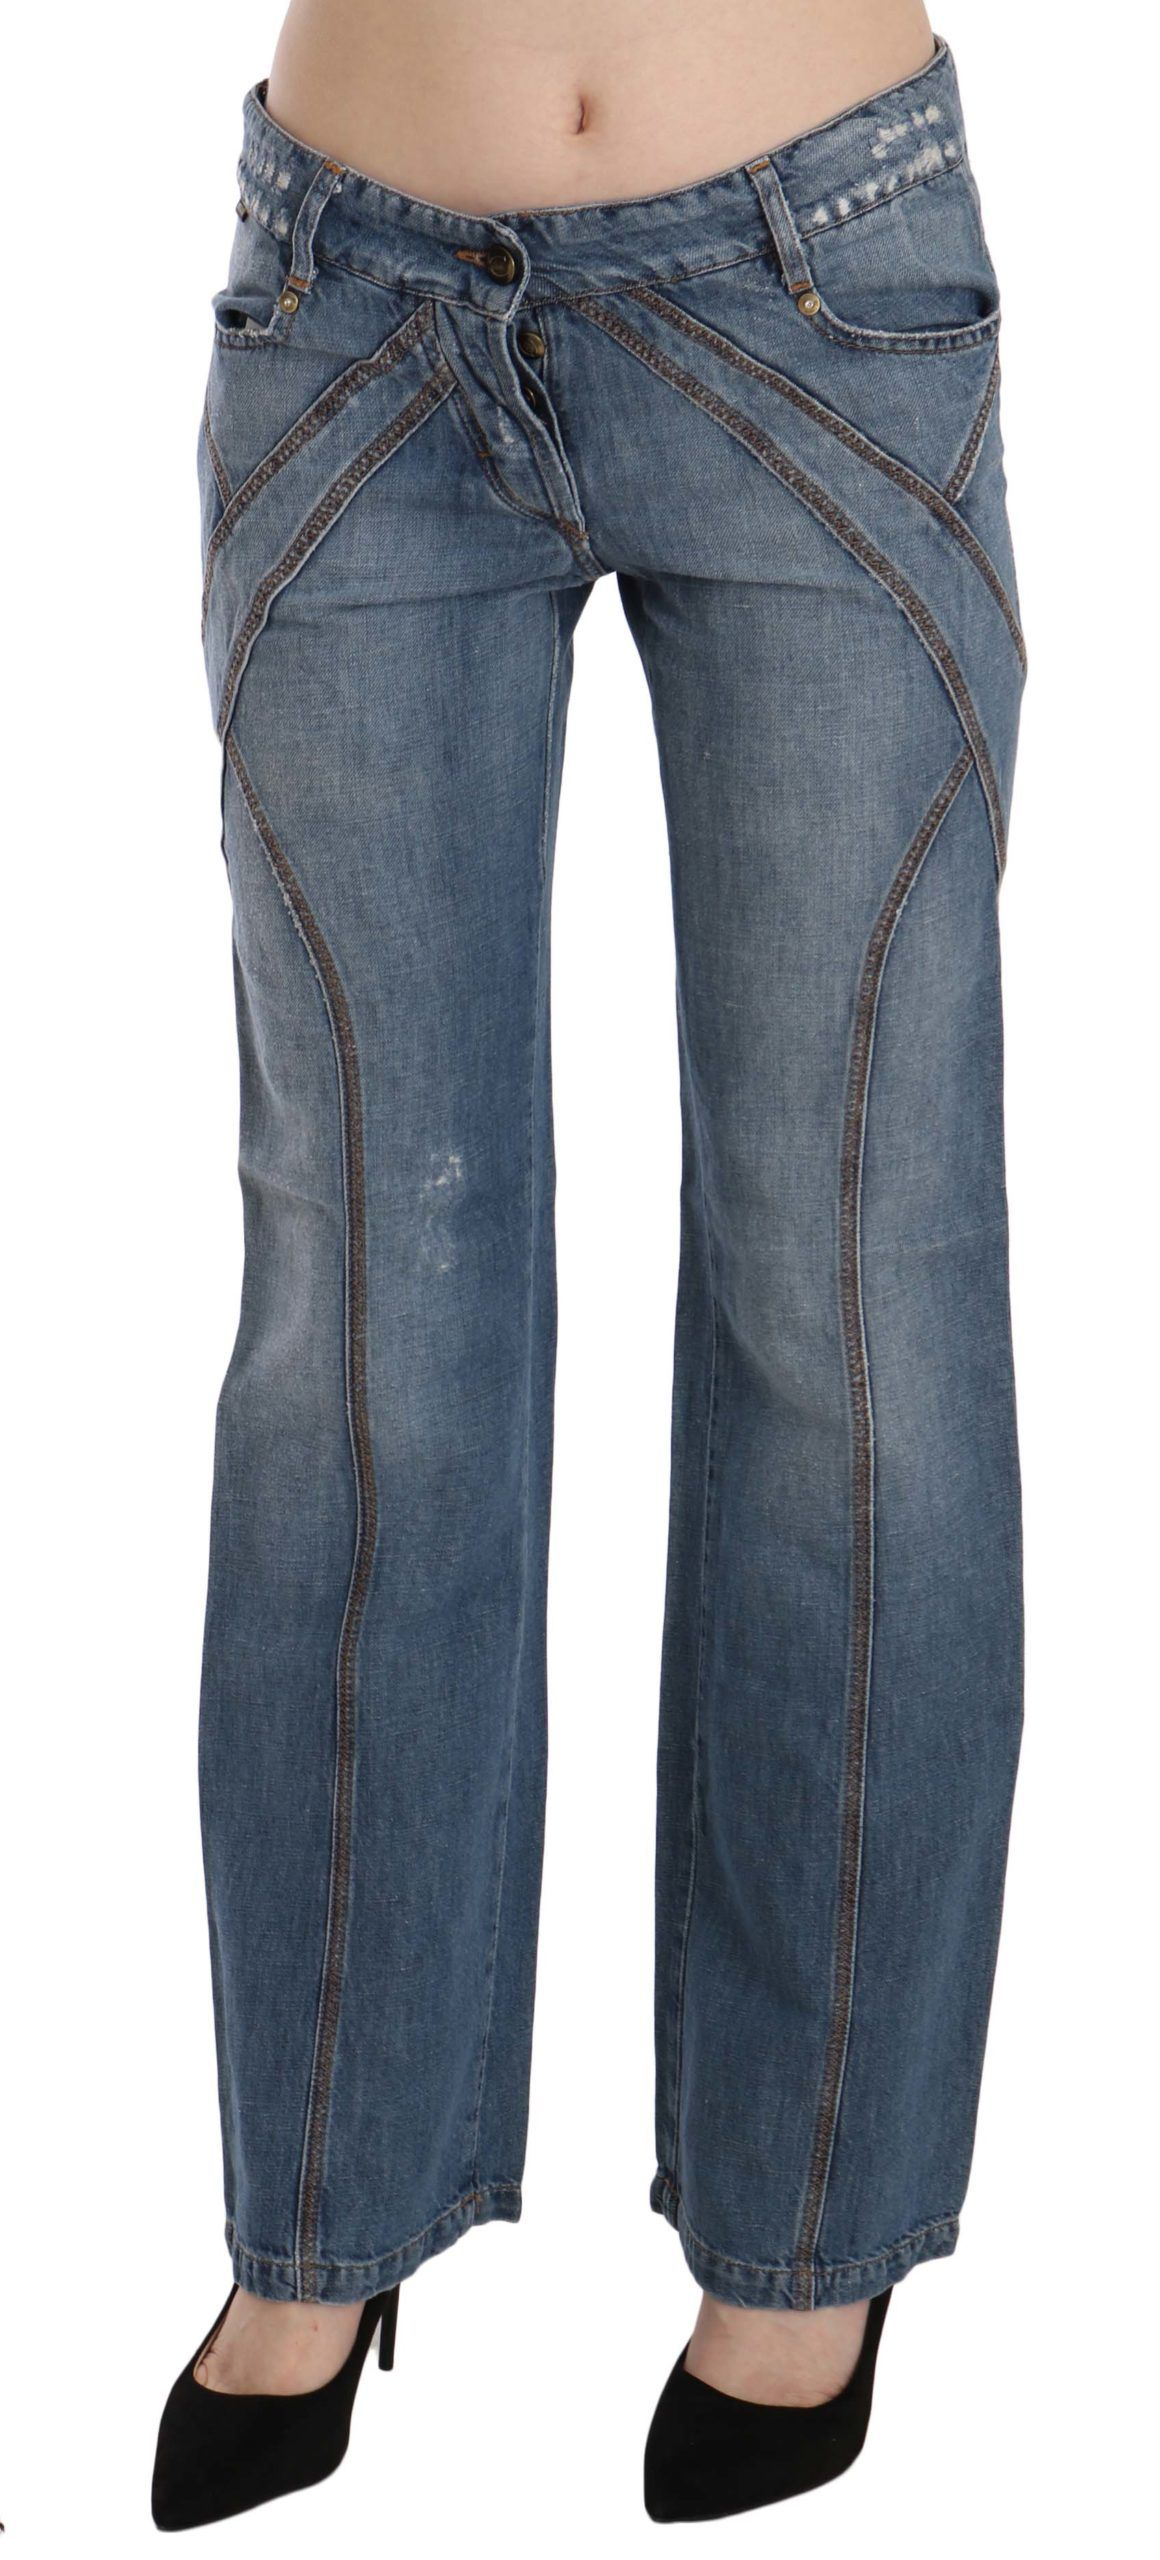 Just Cavalli Blue Washed Low Waist Cotton Flared Denim Pants